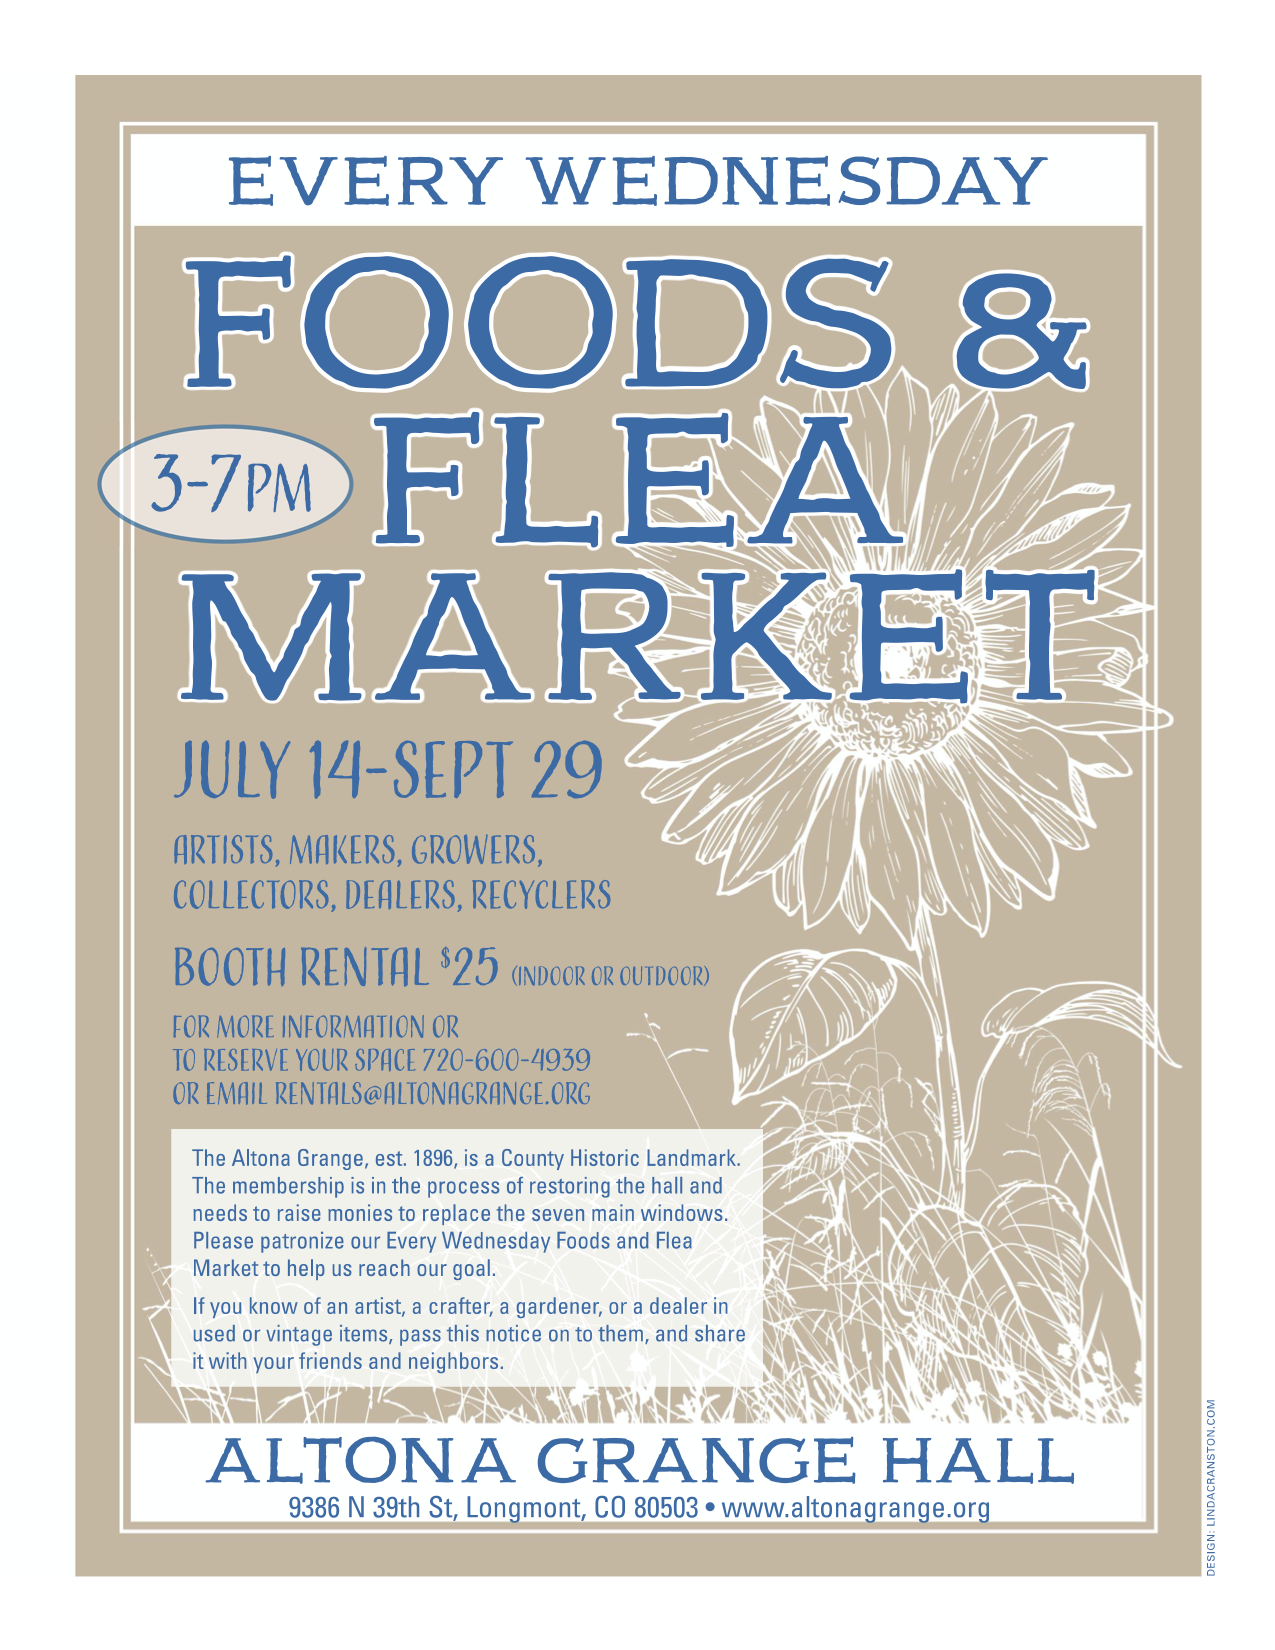 Foods & Flea Market Every Wednesday from July 14th - Sept 29th